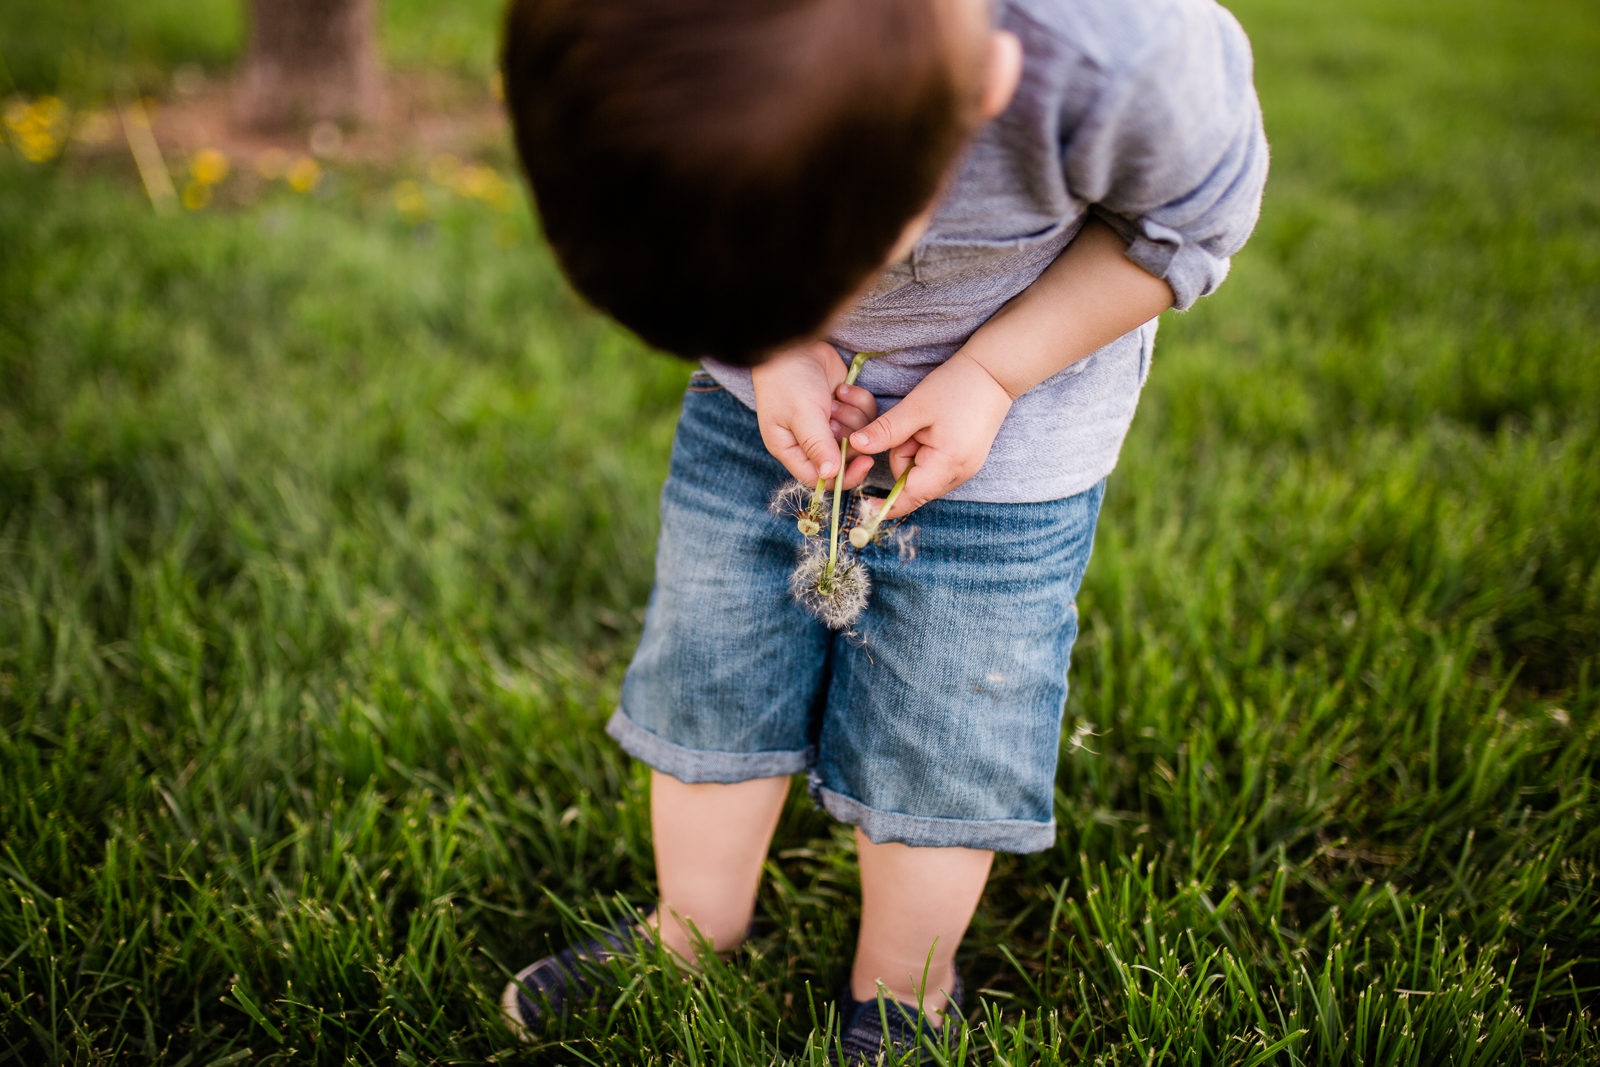 Boy holding dandelion, Kansas City family photography at Loose Park, Rebecca Clair Photography